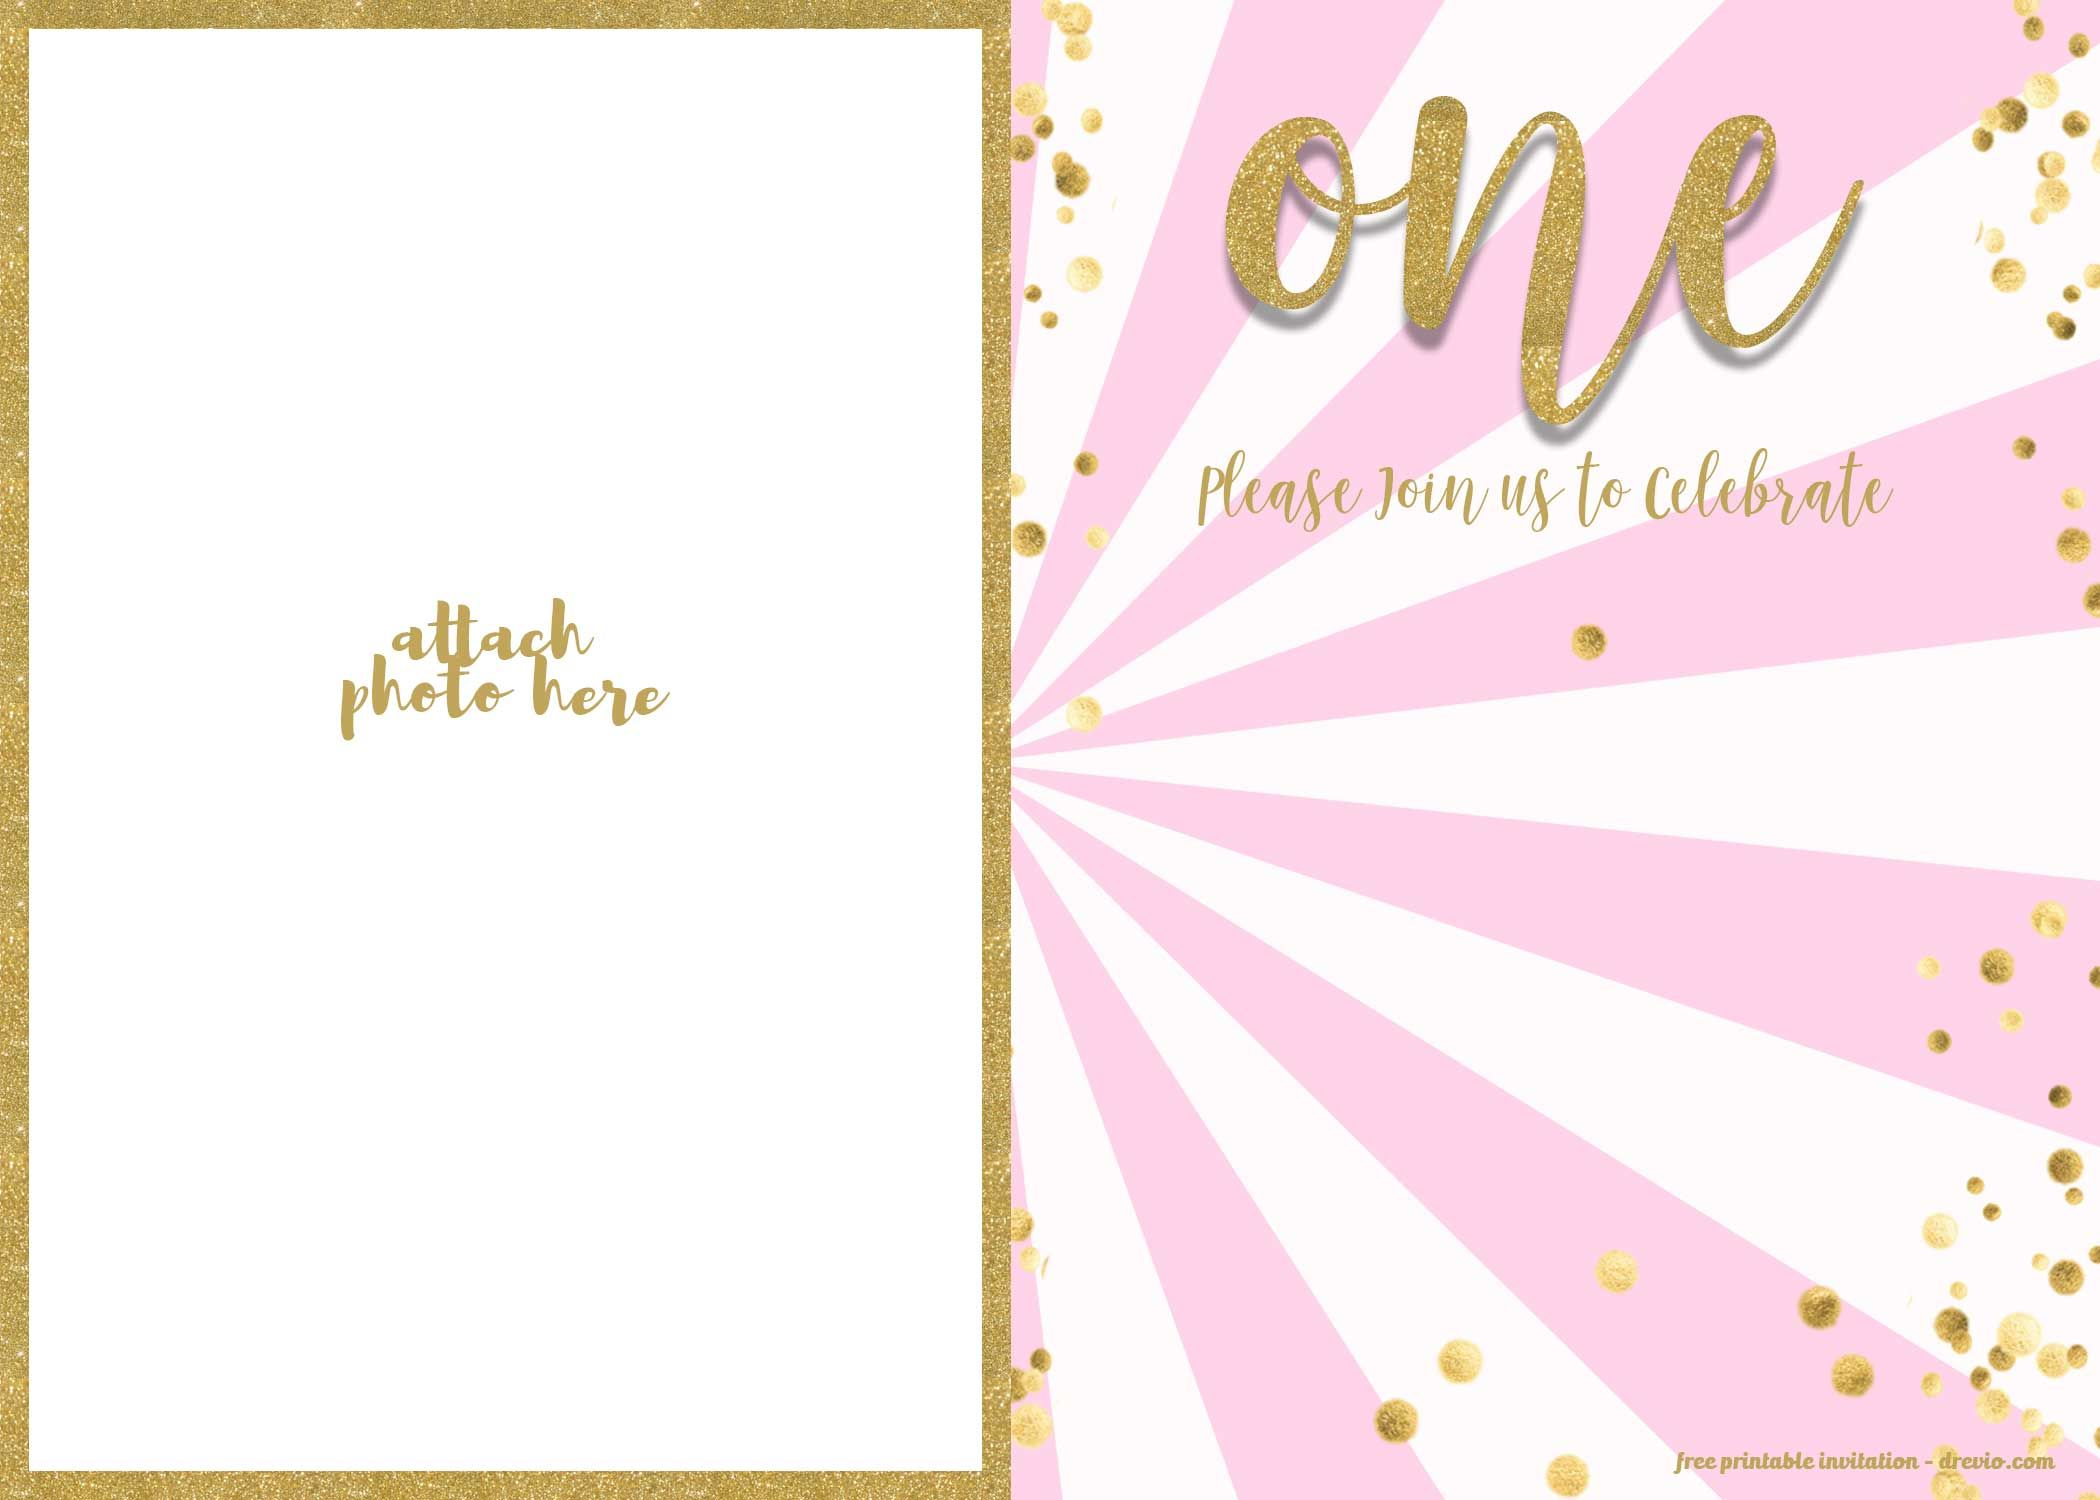 Free 1st Birthday Invitation Pink And Gold Glitter Template 1st Birthday Invitation Template First Birthday Invitations First Birthday Invitation Cards